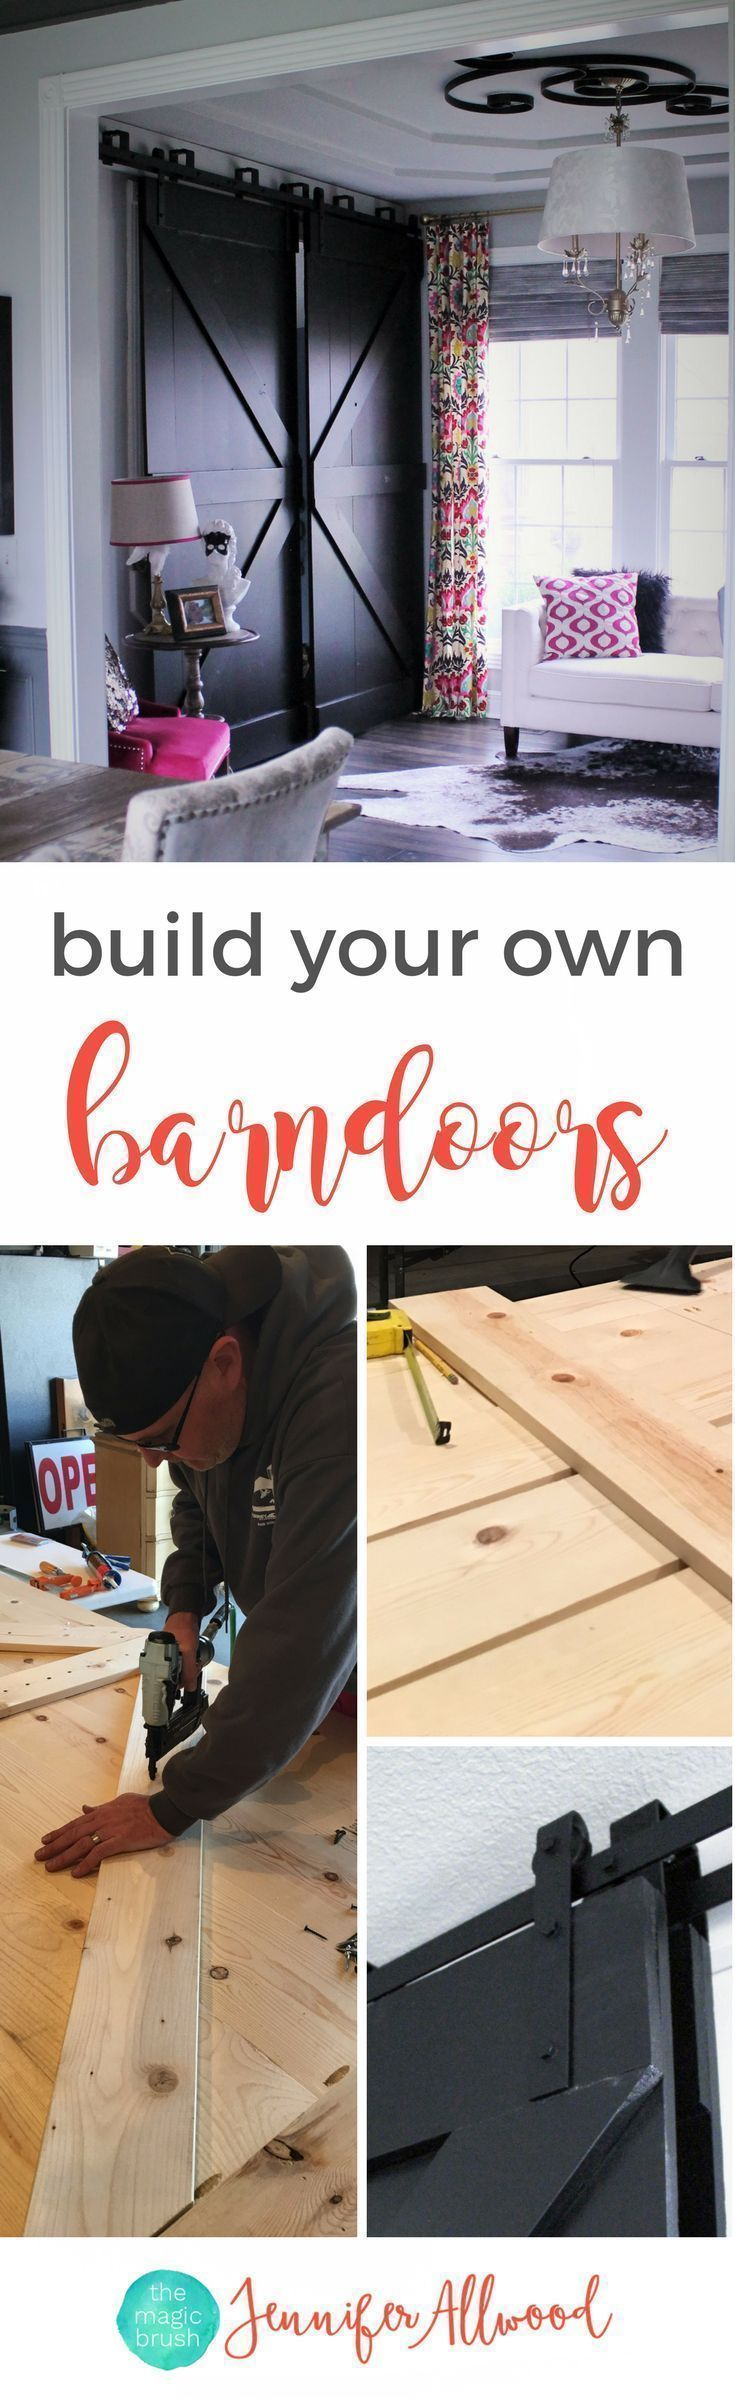 Ideas : Free Tutorial: build your own black bypass barndoors using whitewood | DIY Farmhouse barndoors | Home Office Idea by themagicbrushinc.com | Black Barndoors and painted barndoors #barndoors #doors #diy #repurpose #homedecor #decor #diyhomedecor #farmhouse